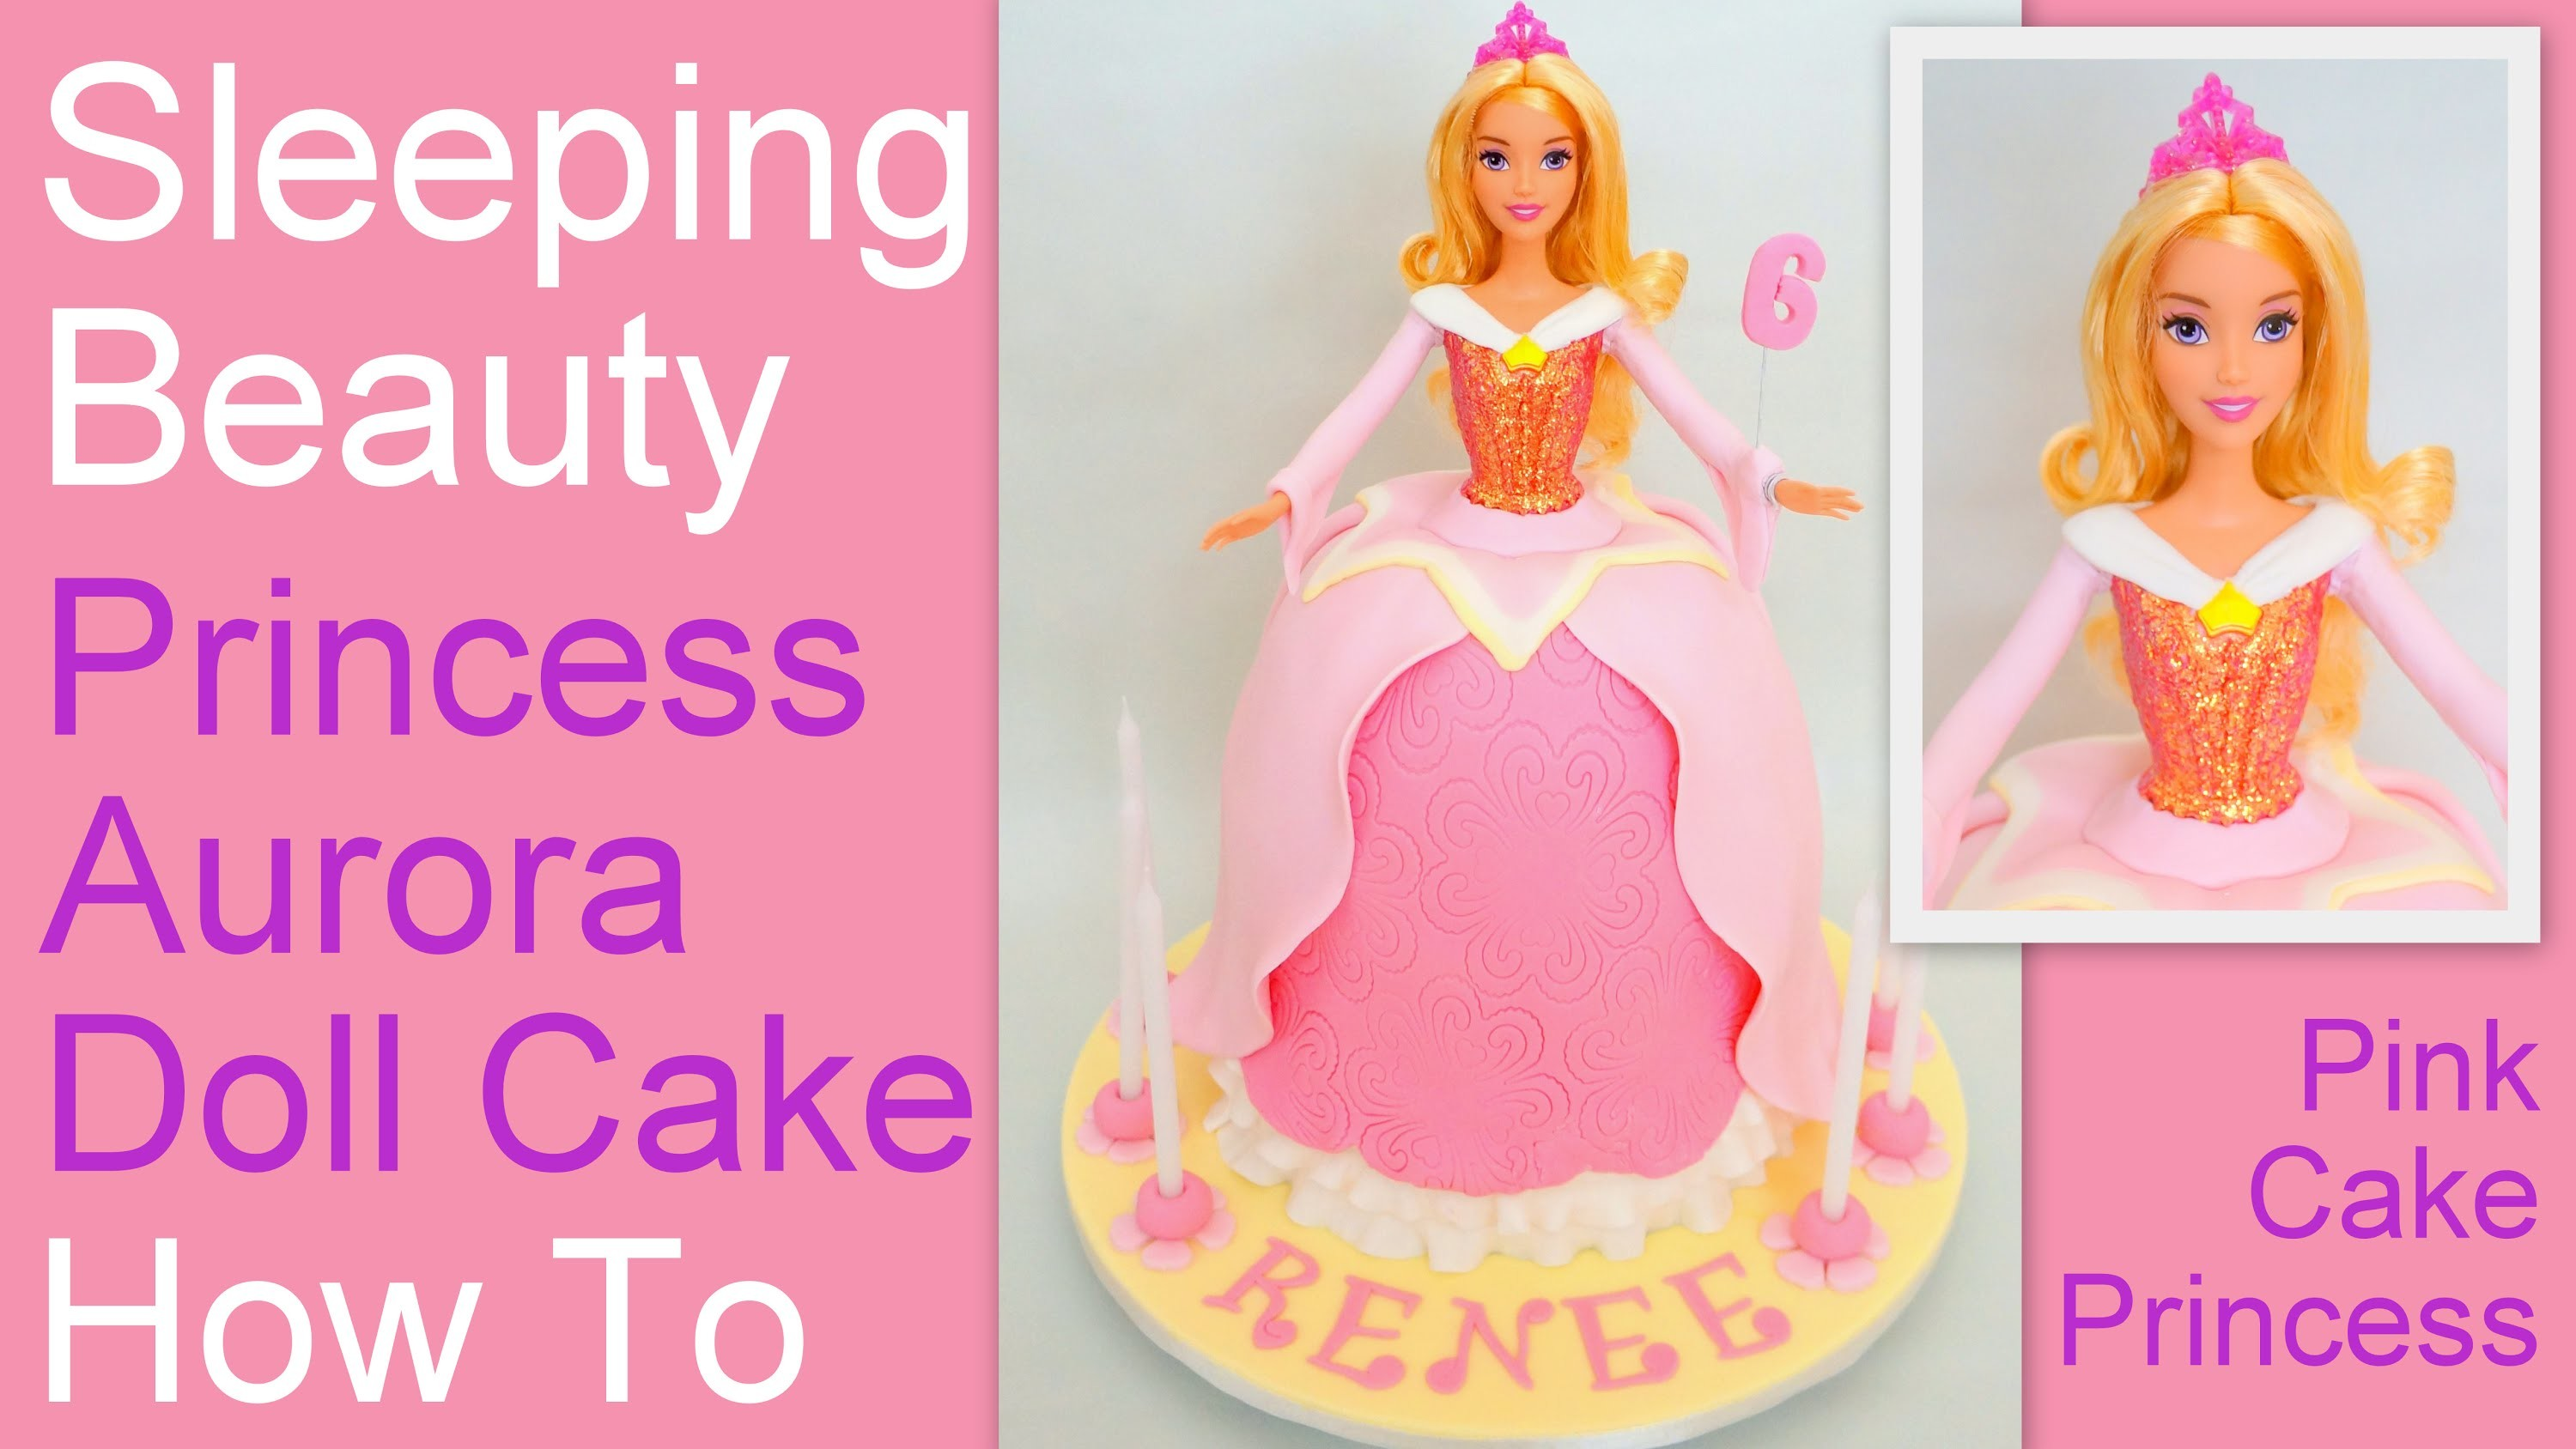 How to Make a Princess Aurora Doll Cake - Disney's Sleeping Beauty Cake by Pink Cake Princess